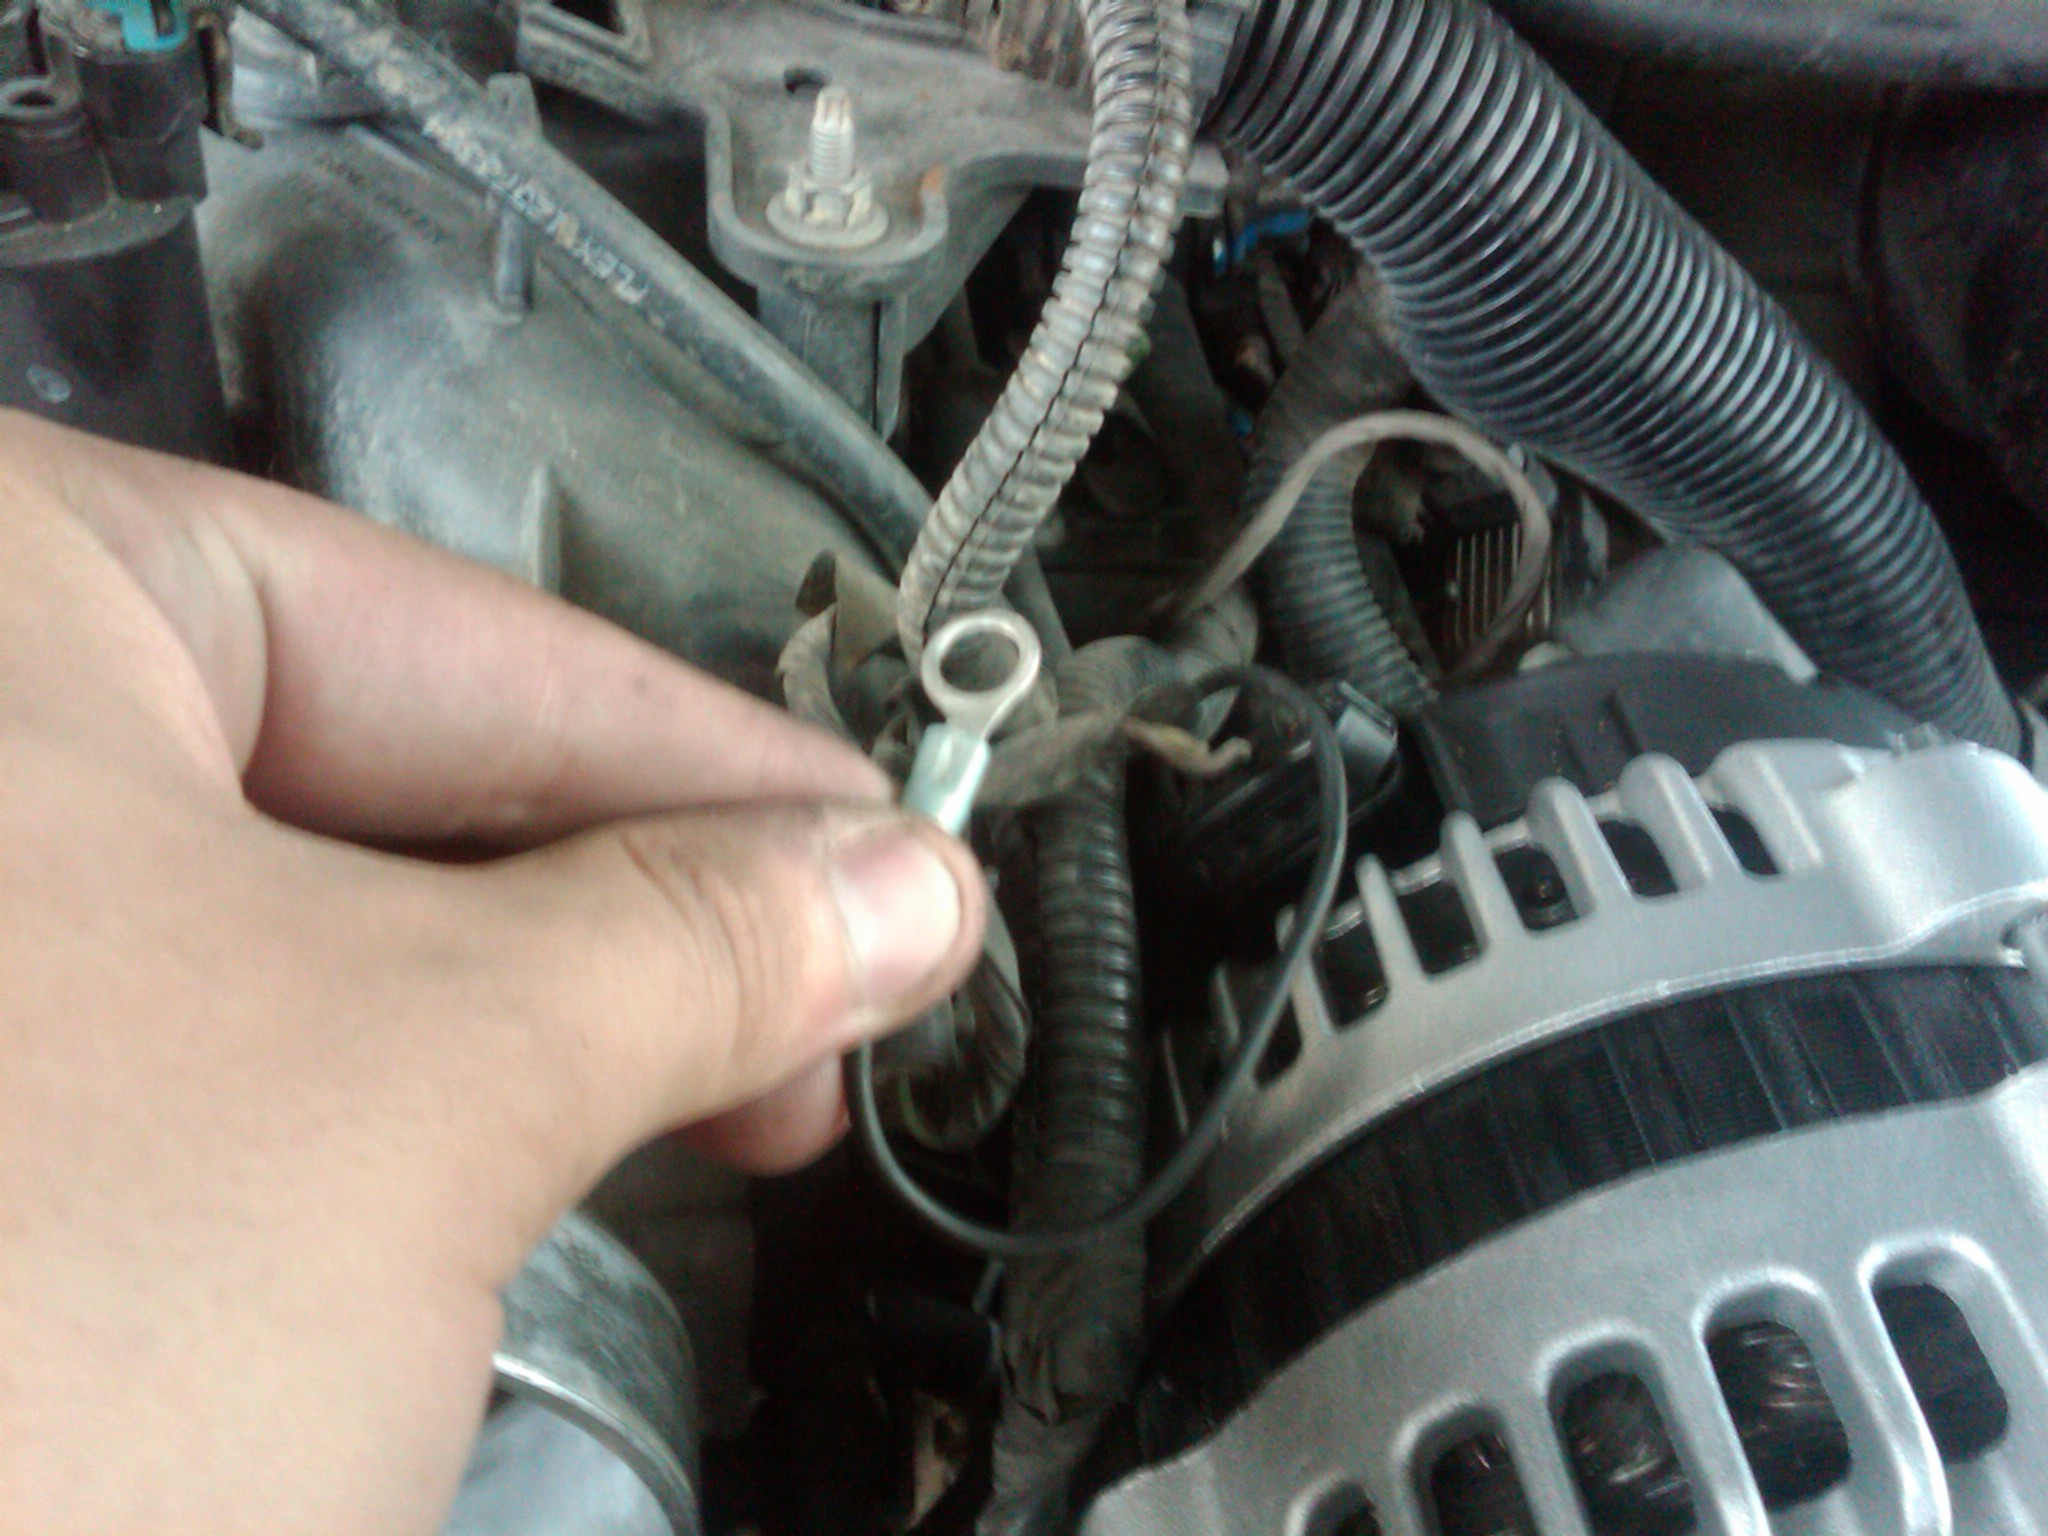 I Need To Understand Wiring For The Alternator On A 2002